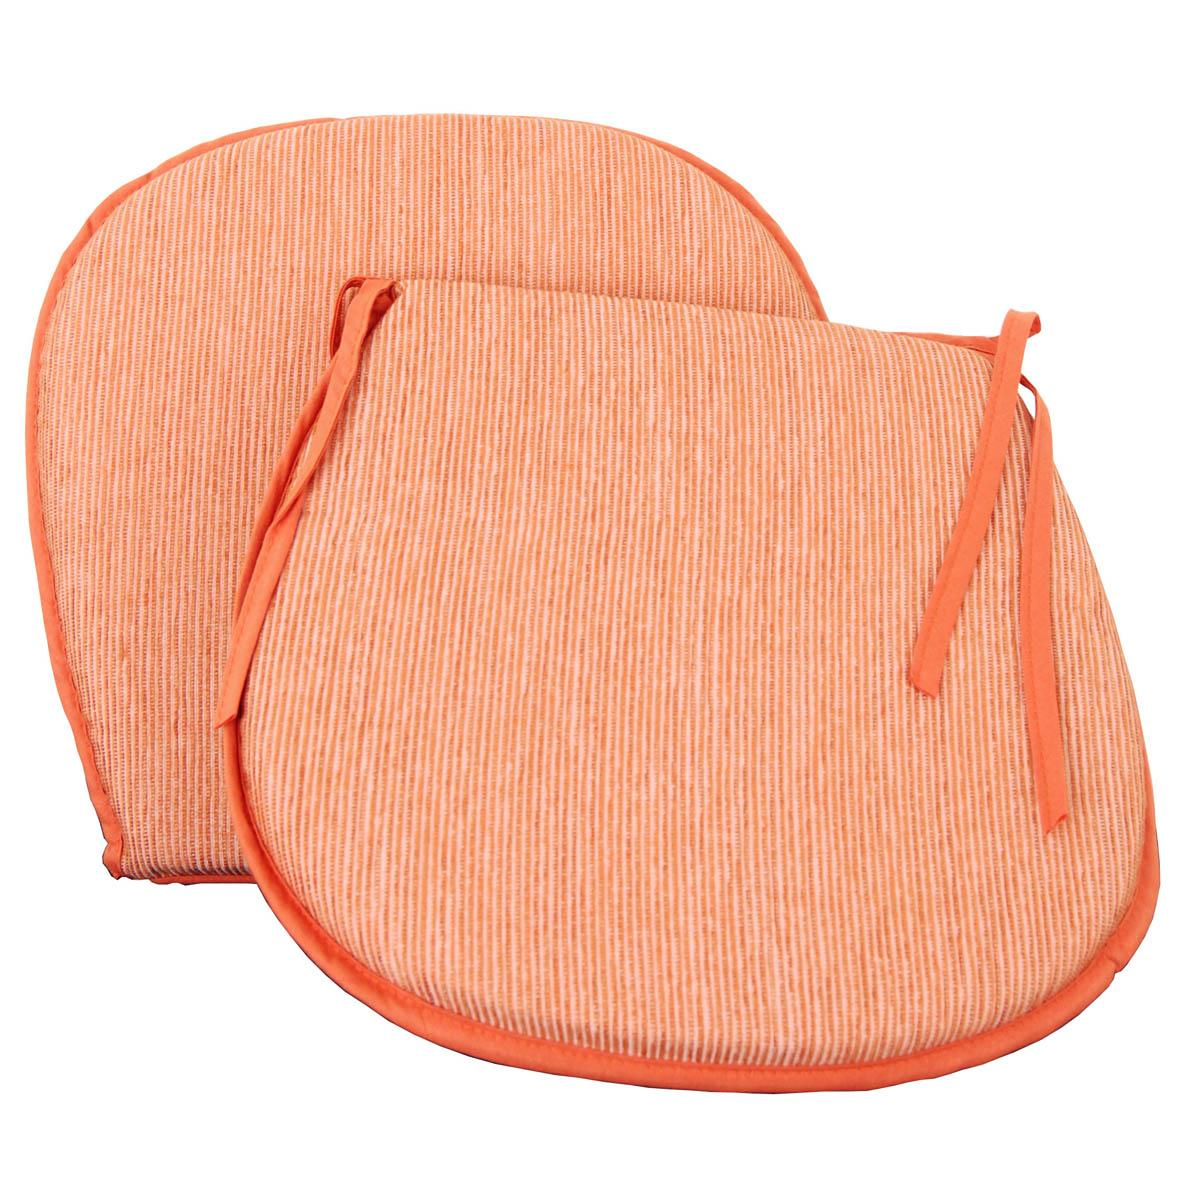 Stockists of Terracotta Roma Seat Pads 34cm x 36cm